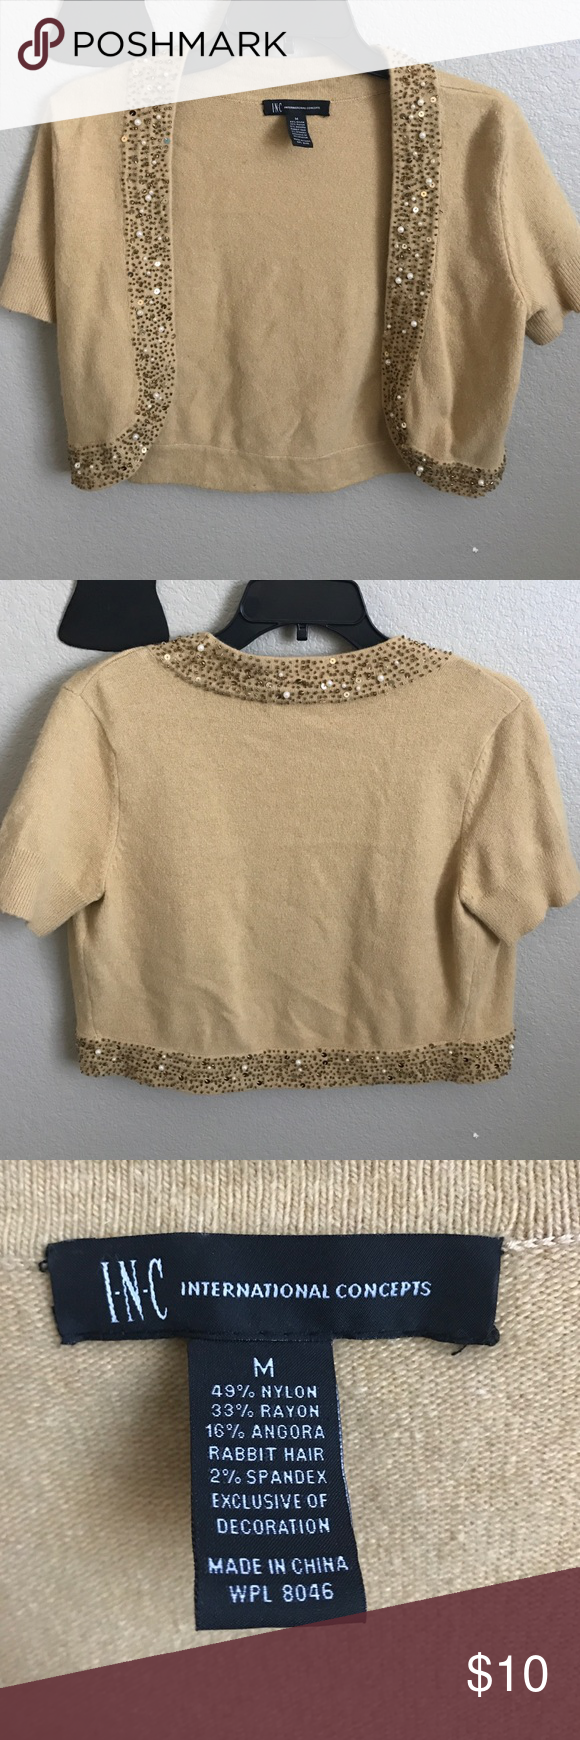 INC International Concepts cardigan Butter color INC International Concepts cardigan. Good condition no rips or stains. INC International Concepts Sweaters Cardigans